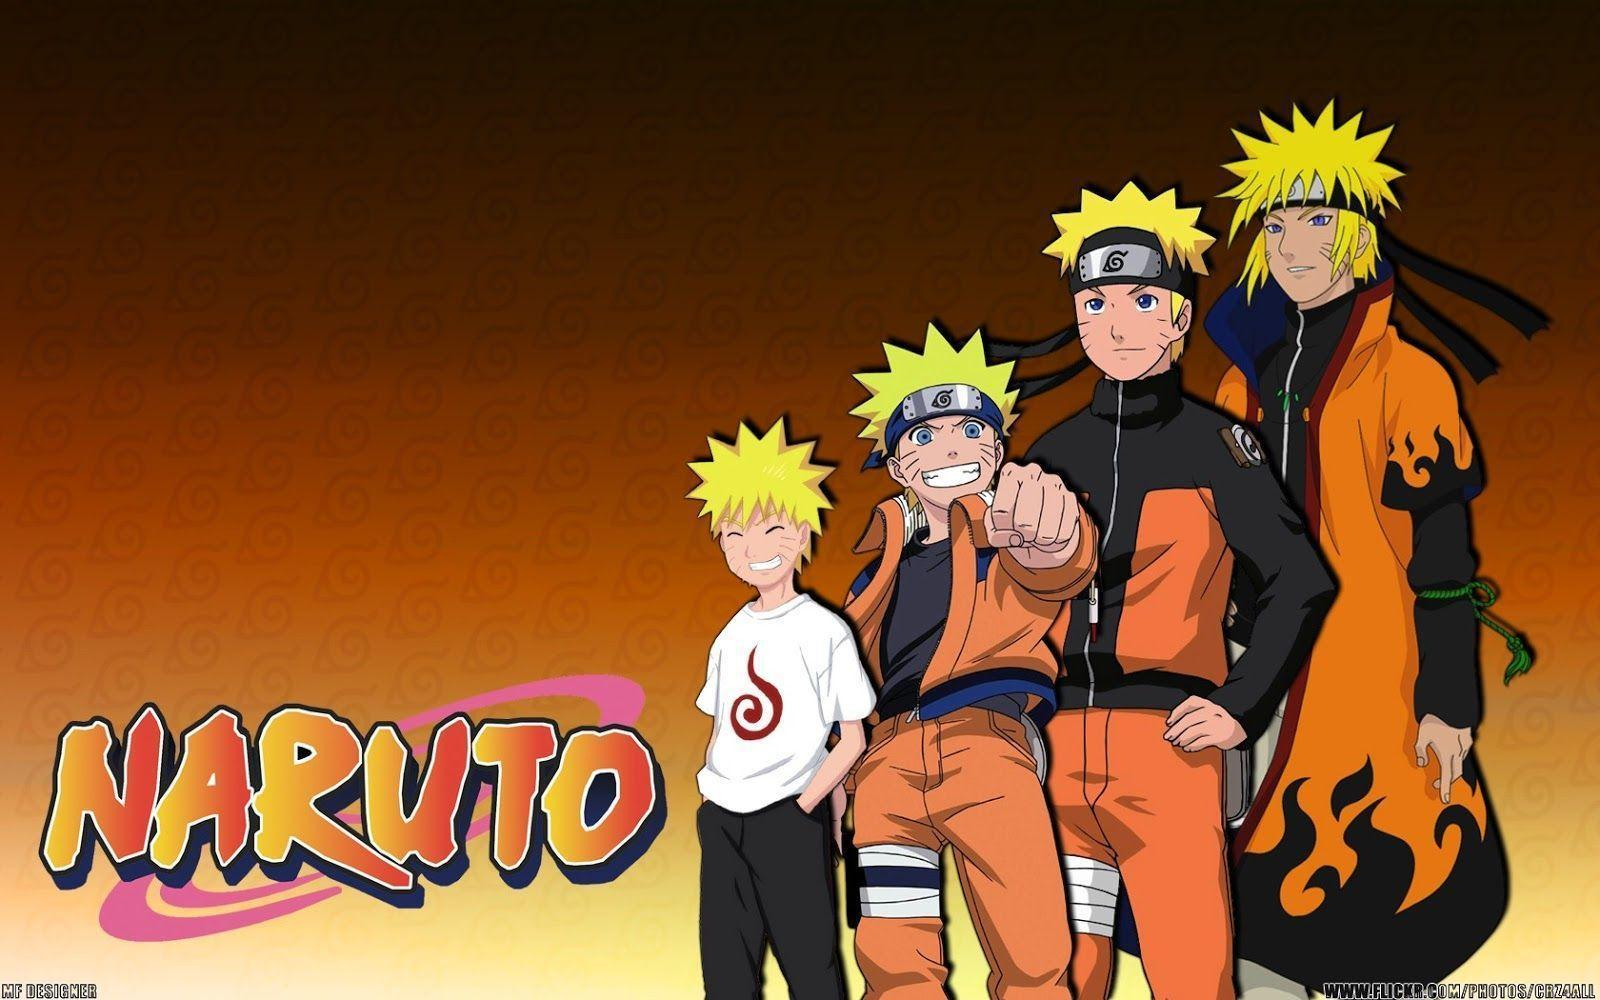 Naruto Hd Wallpapers For Iphone Wallpaper Hd Co